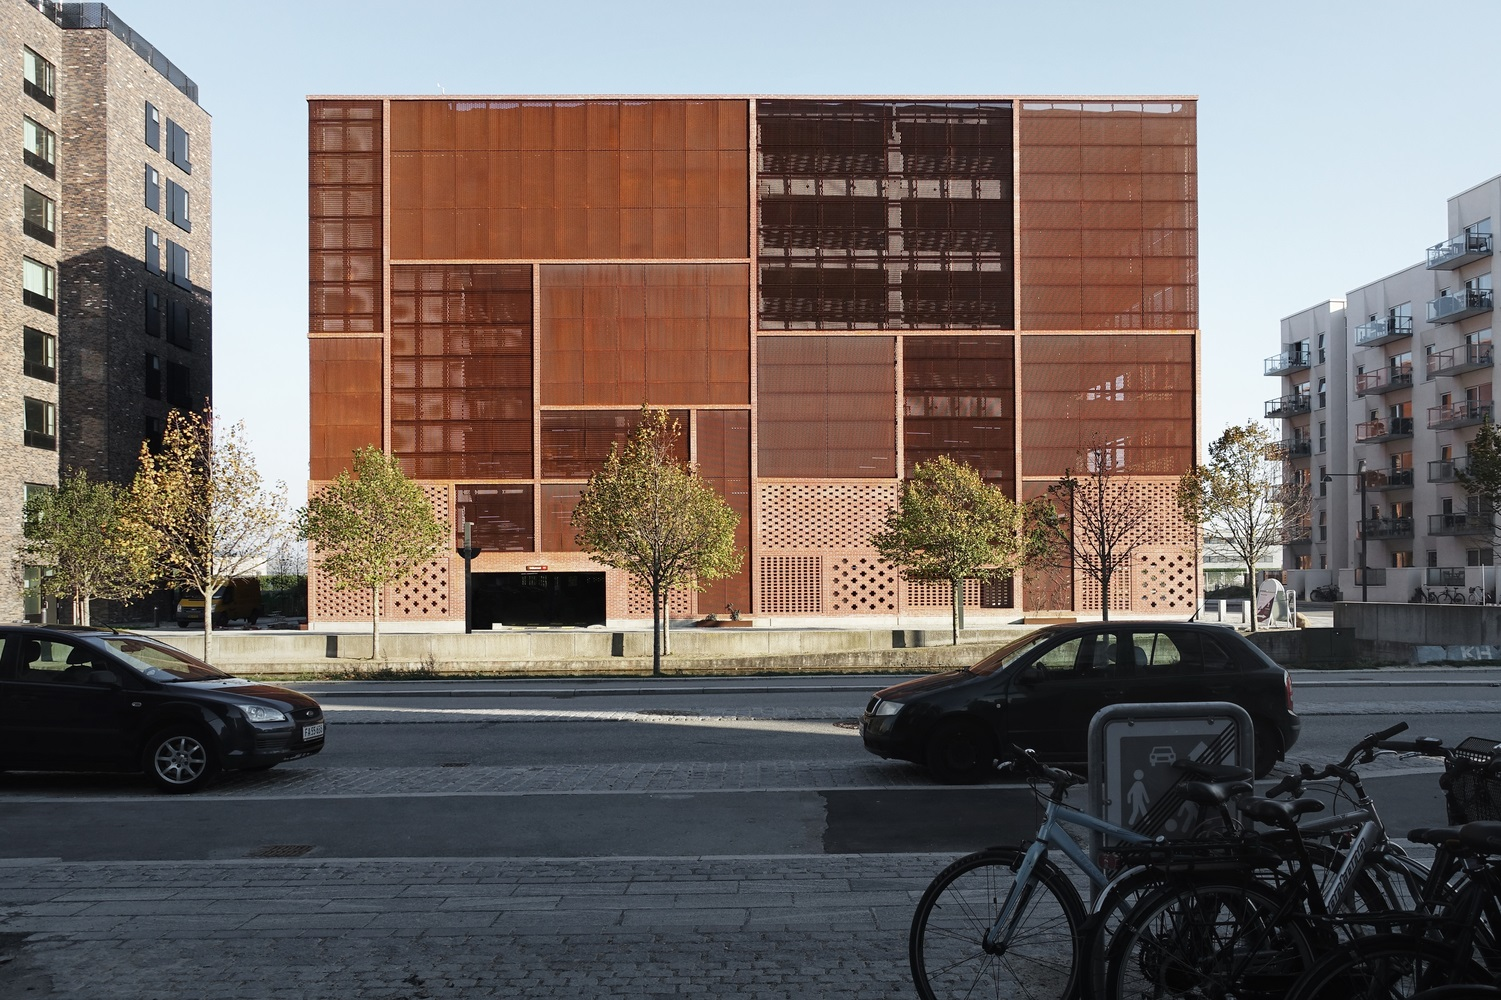 Parking House Ejler Bille is a Prime Example of Human Scale Infrastructure